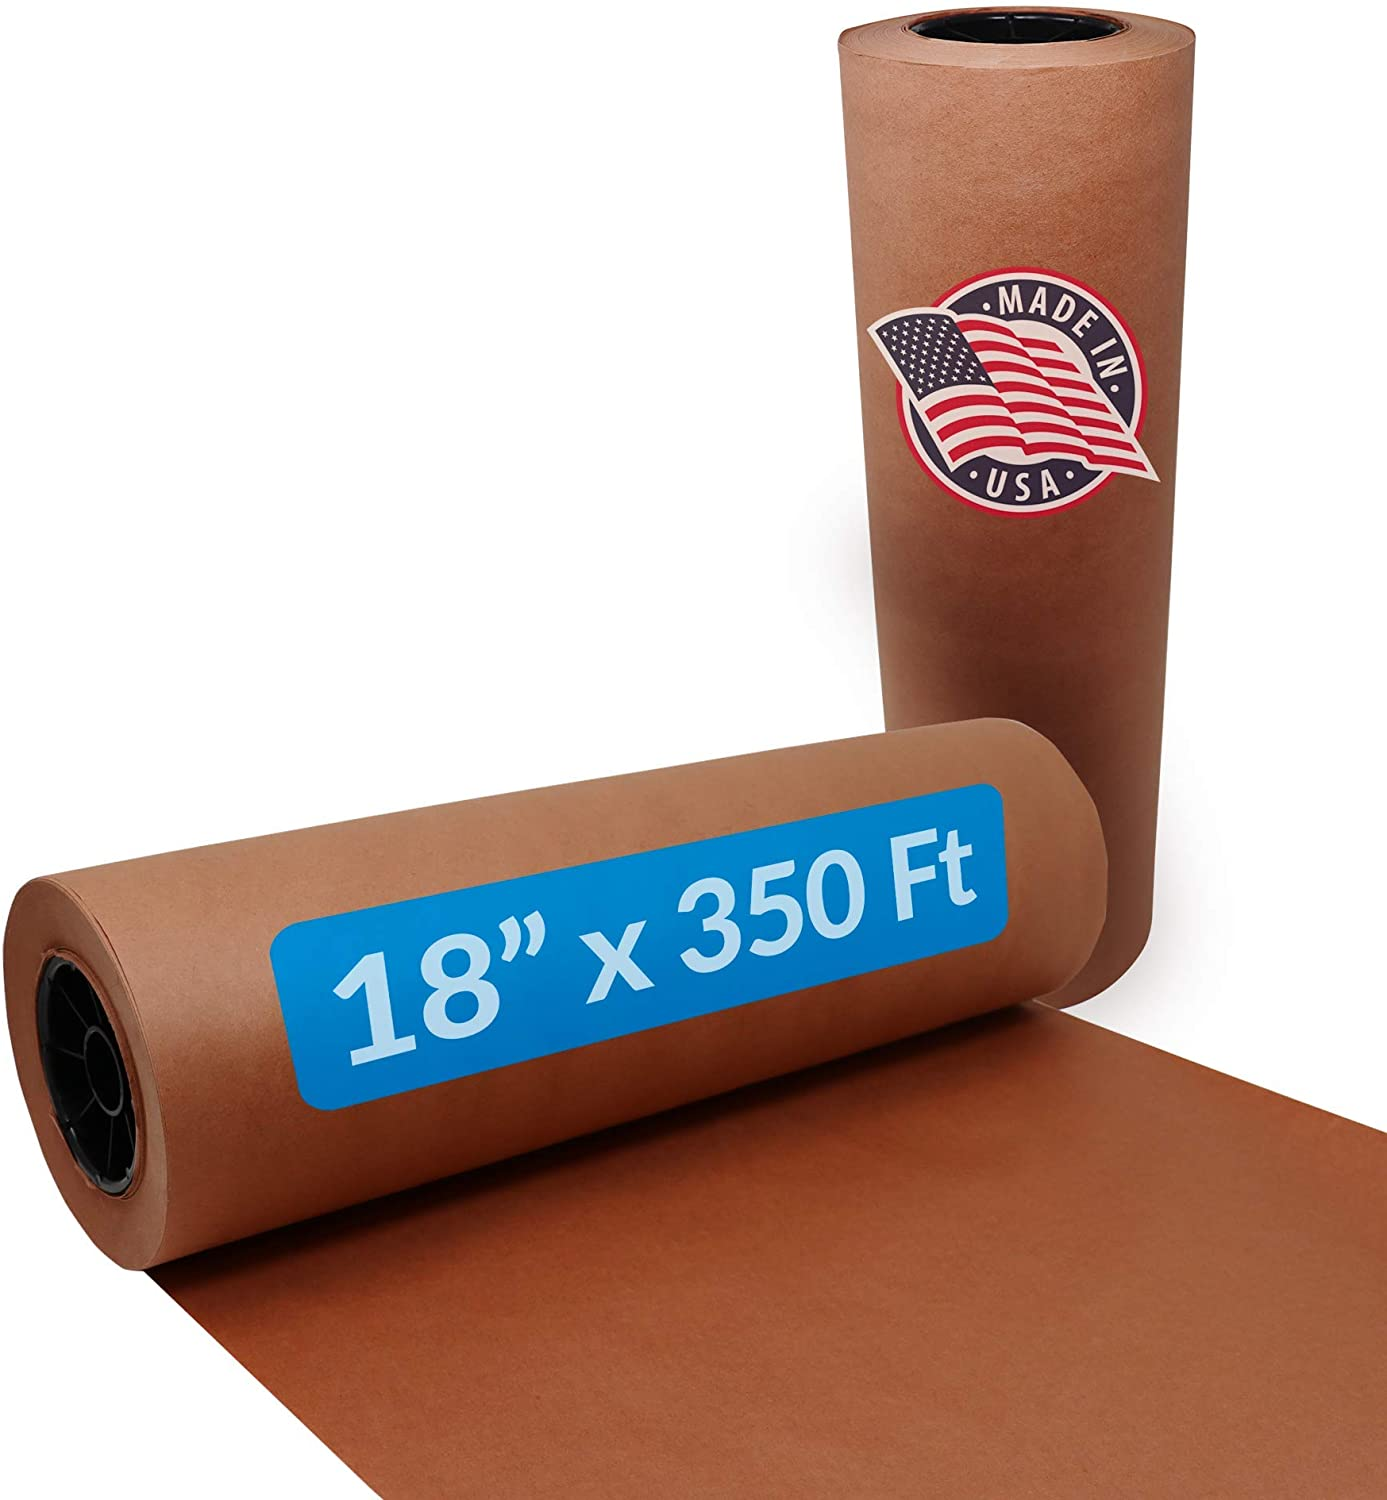 Reli. Pink Butcher Paper Roll | 18 Inch x 350 Feet Bulk | Made in USA | Unwaxed, Peach Butcher Paper for Smoking Meat | Food Grade Kraft Butcher Paper for BBQ, Meat Smoking/Meat Wrapping (Pink)